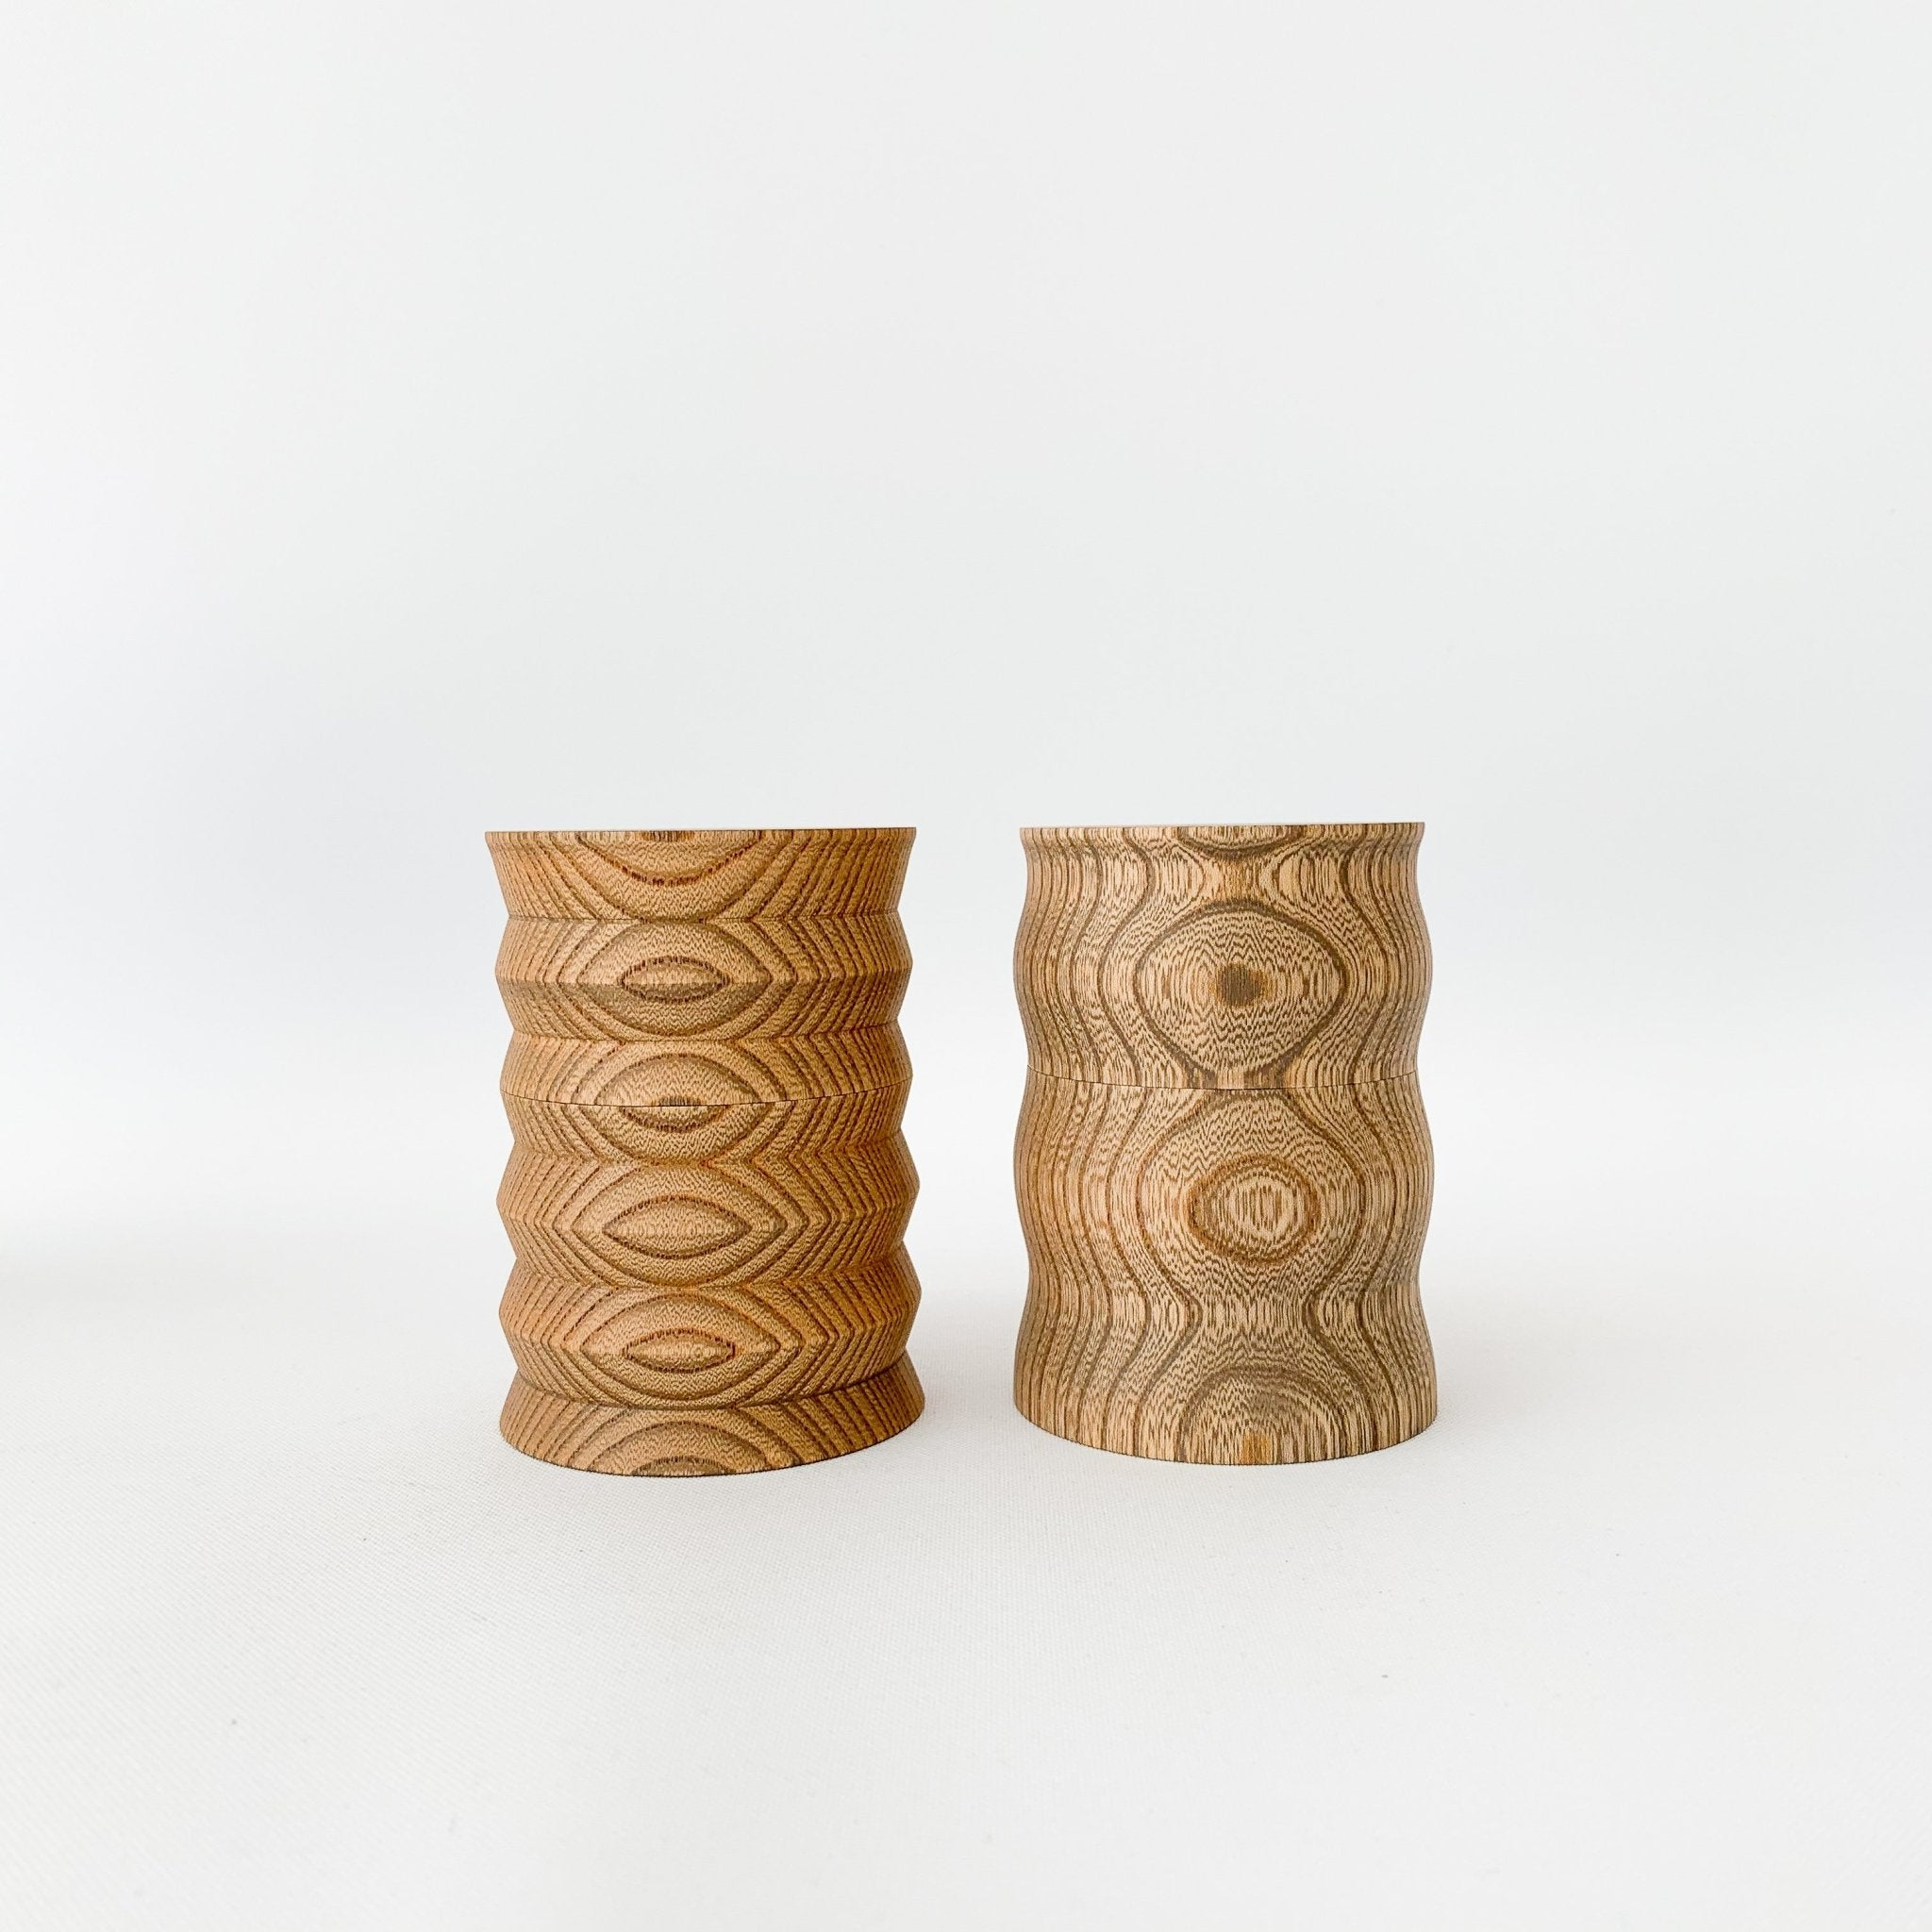 Kisen Tea Containers by Gato - tortoise general store